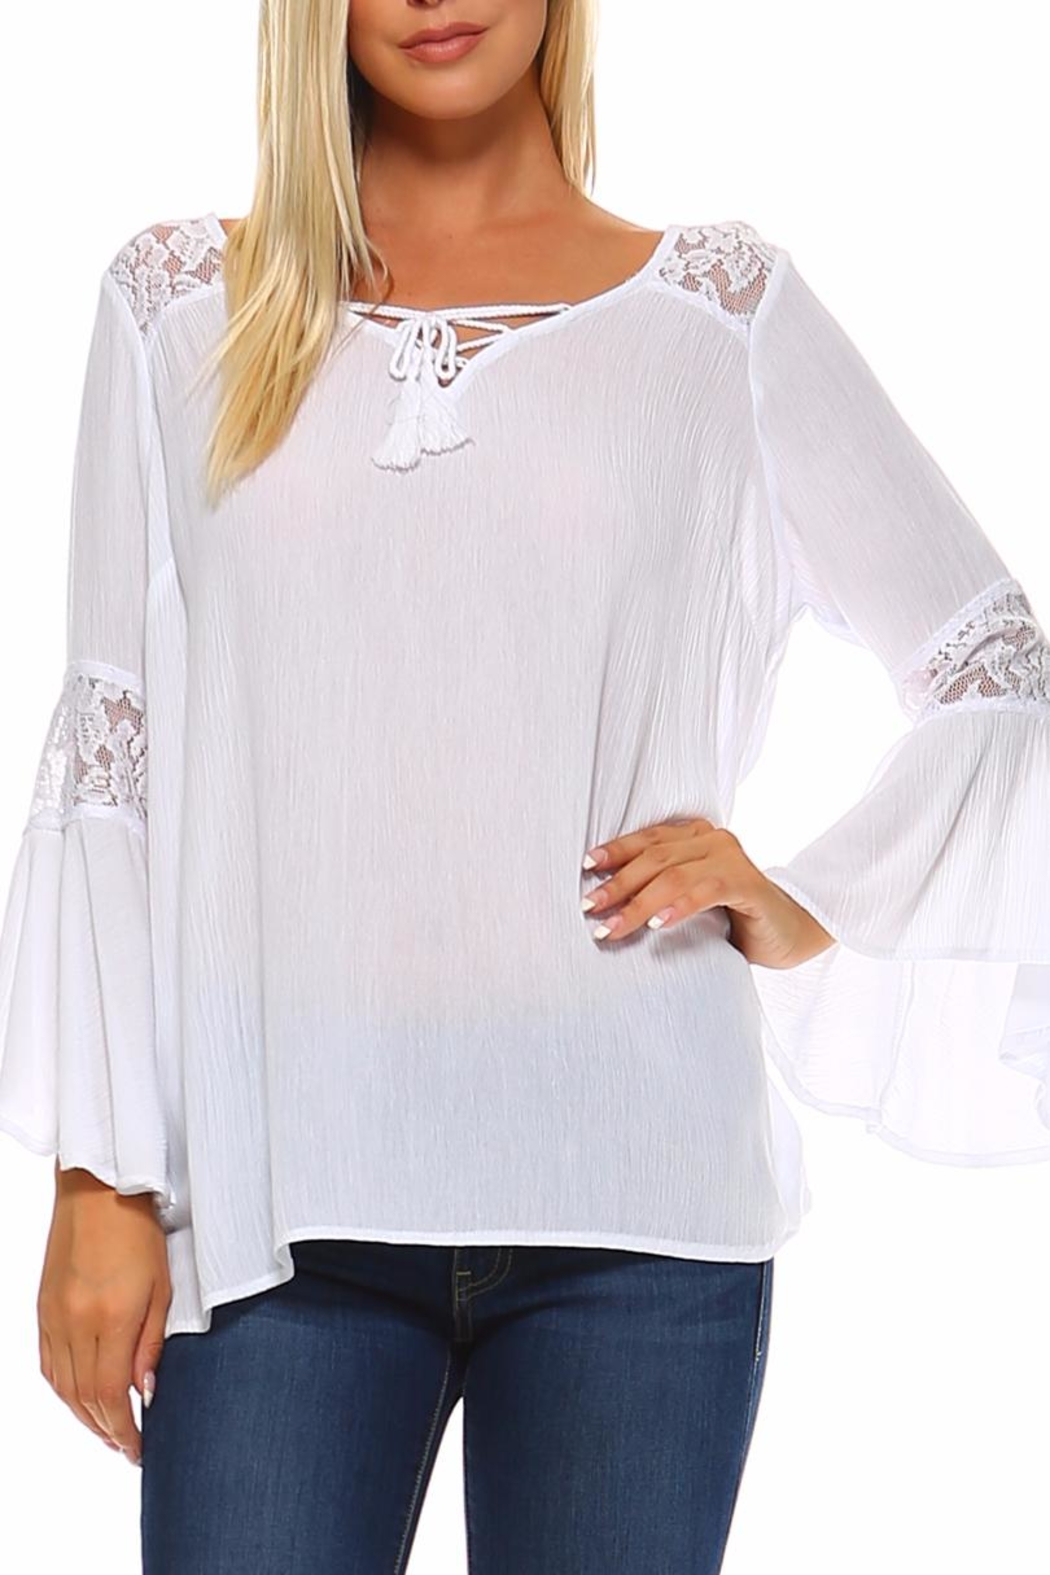 Absolutely Famous Lace-Up Front Top - Main Image